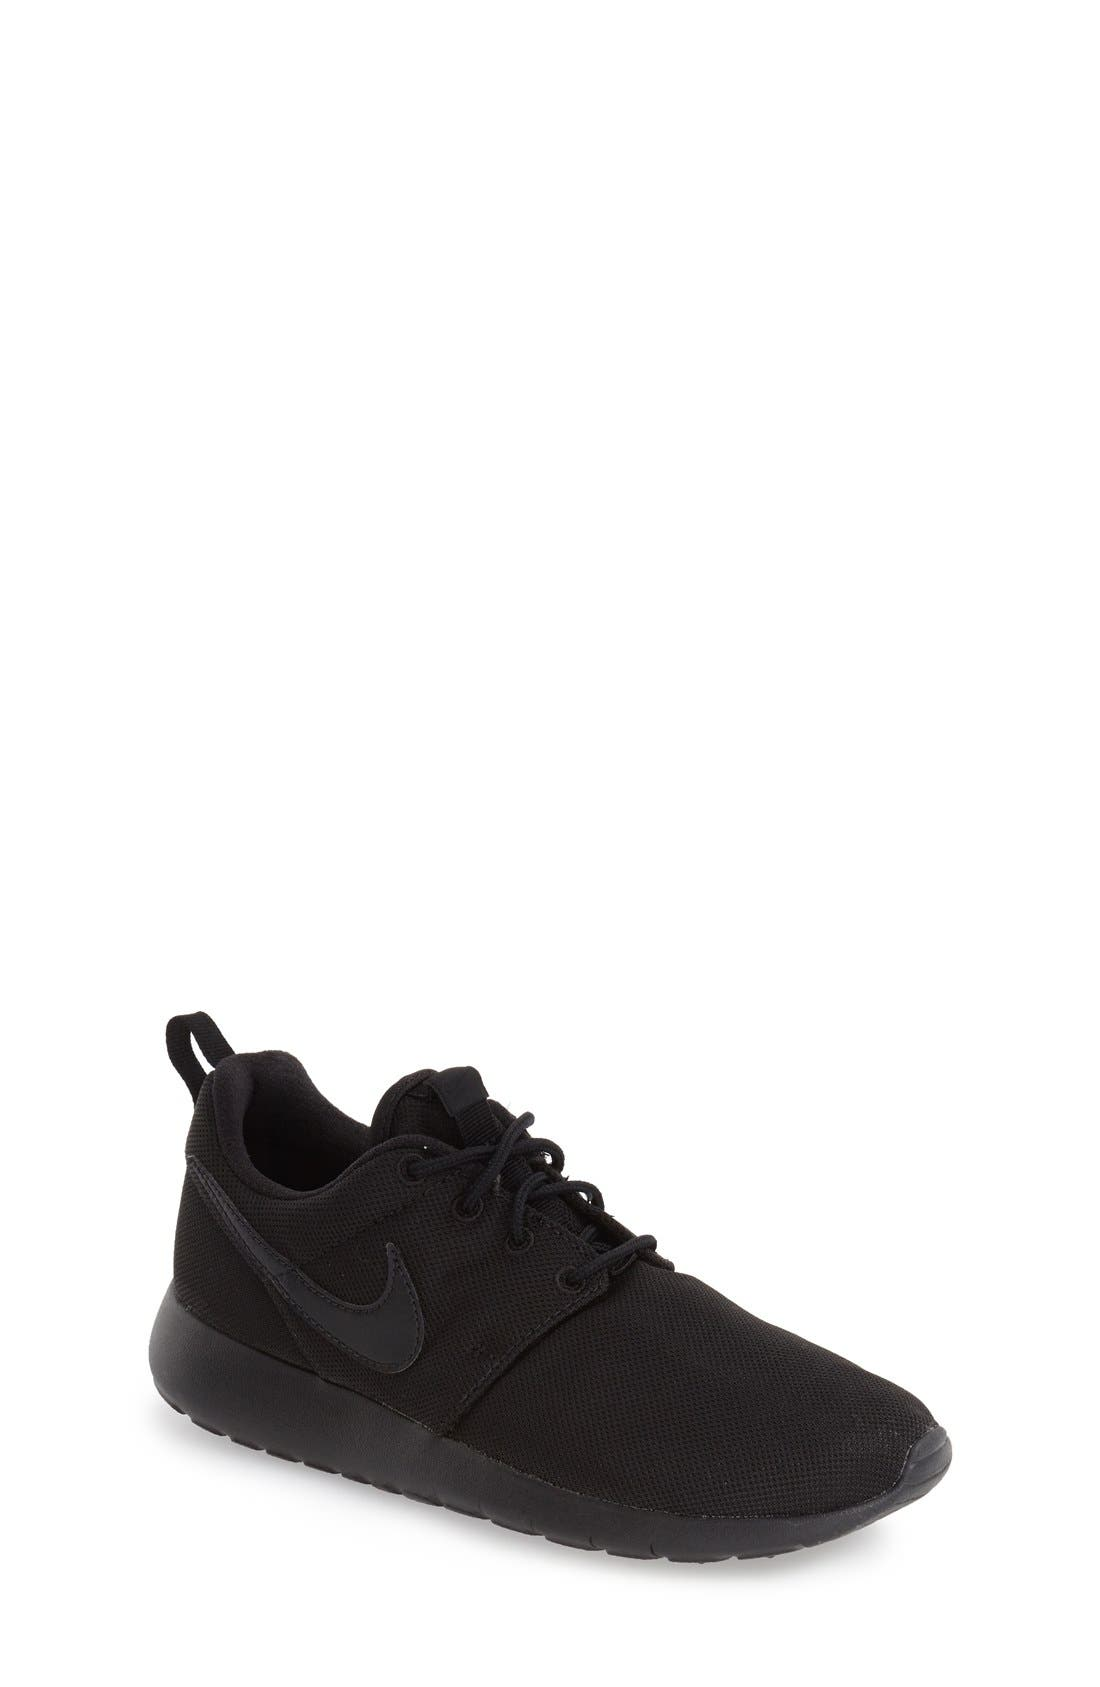 'Roshe Run' Sneaker,                             Main thumbnail 12, color,